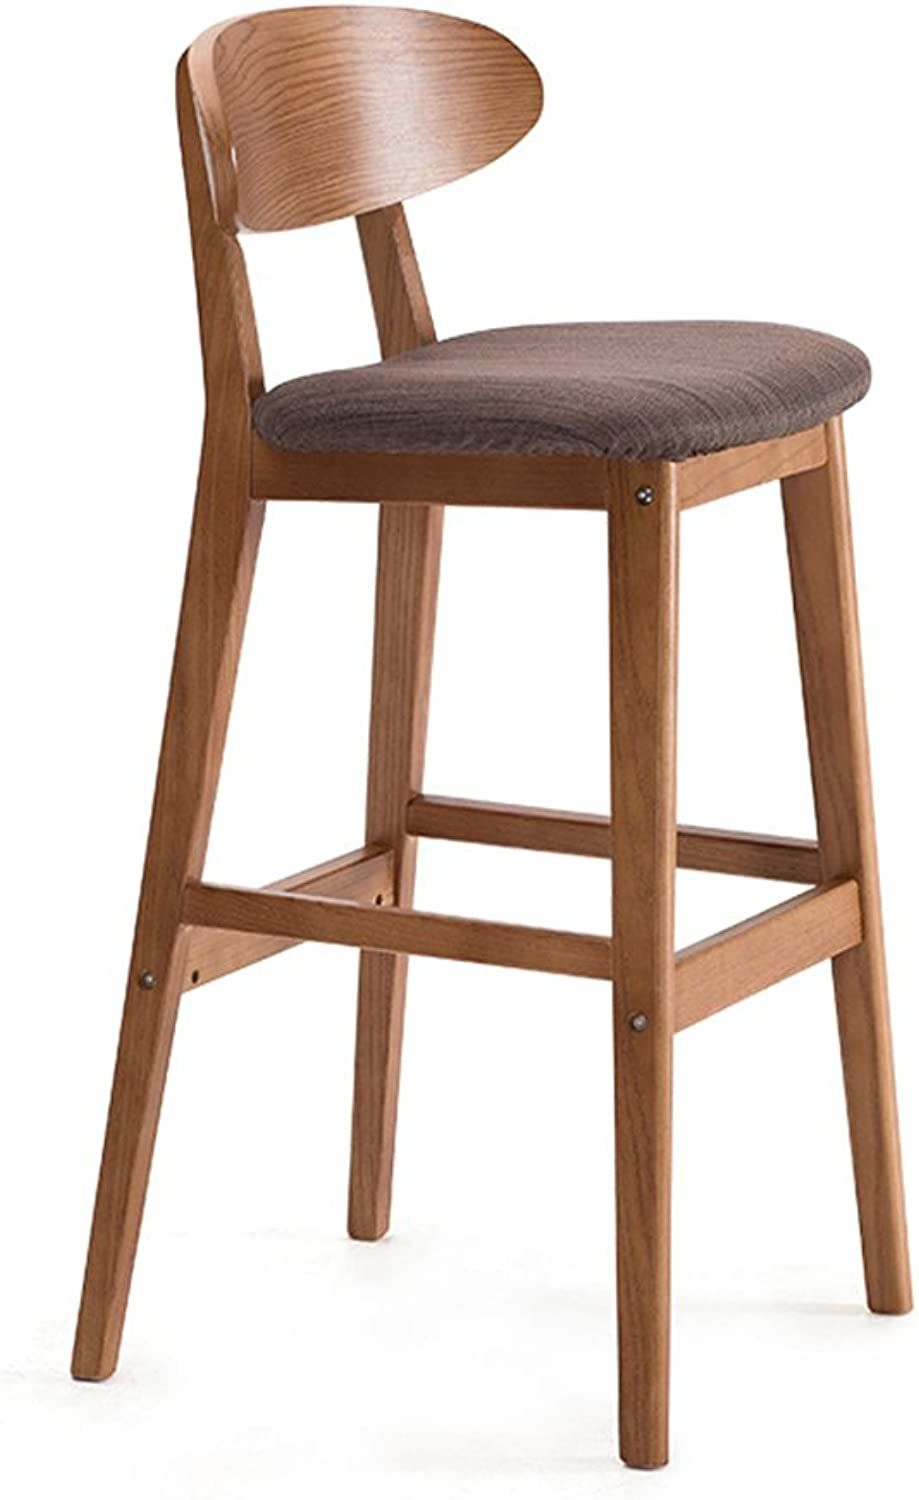 BO WEN HOME- Solid wood creative bar chairs, bar chairs, European-style back bars, simple retro bar stool, high stool ( color   Brown )